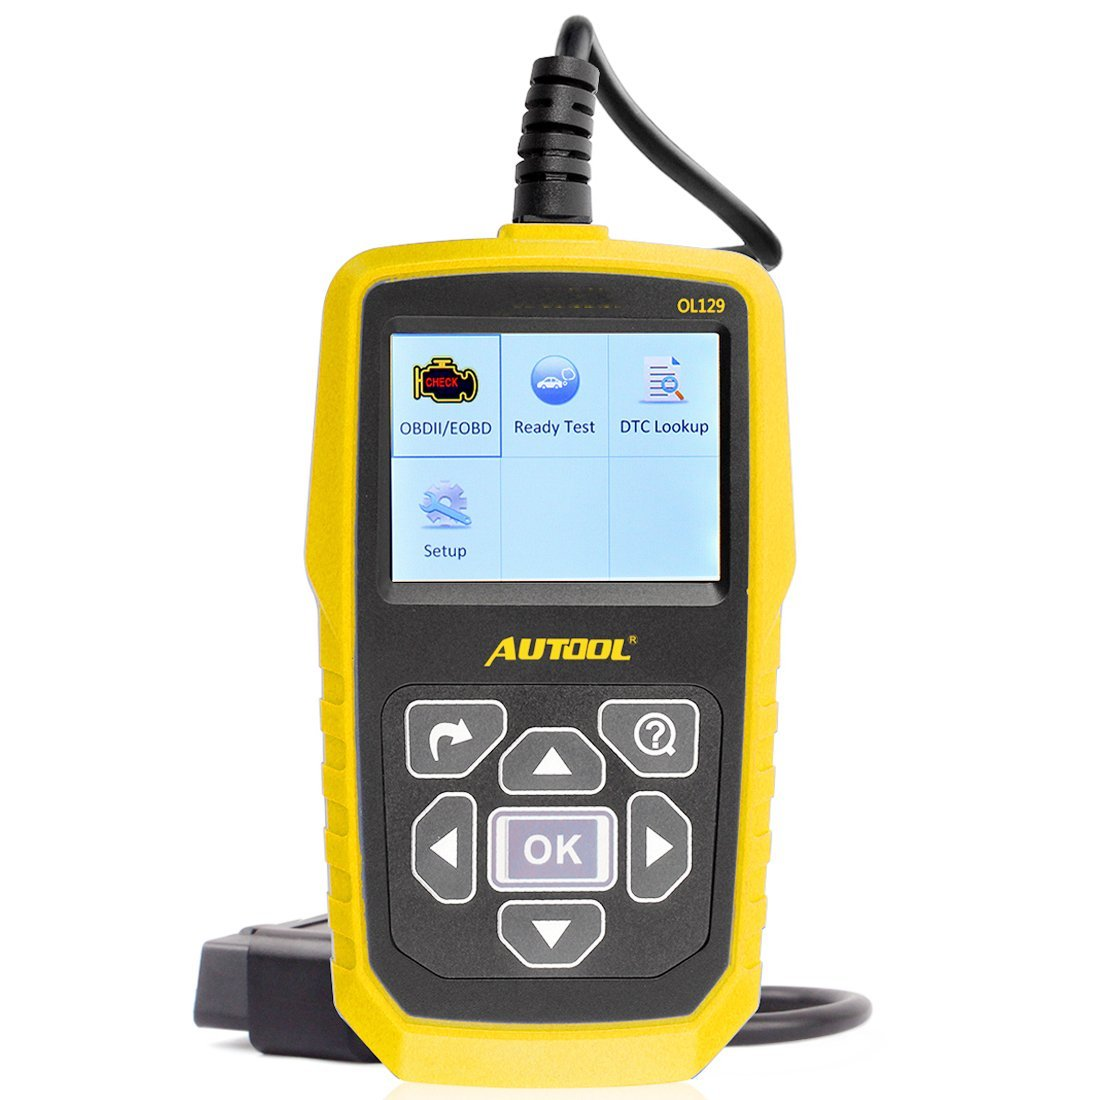 G-turbosnail OL129 AUTOOL Automotive Fault Code Reader Erase Battery Power Monitor OBDII/EOBD and CAN Diagnostic Tool 2.8'' TFT LCD